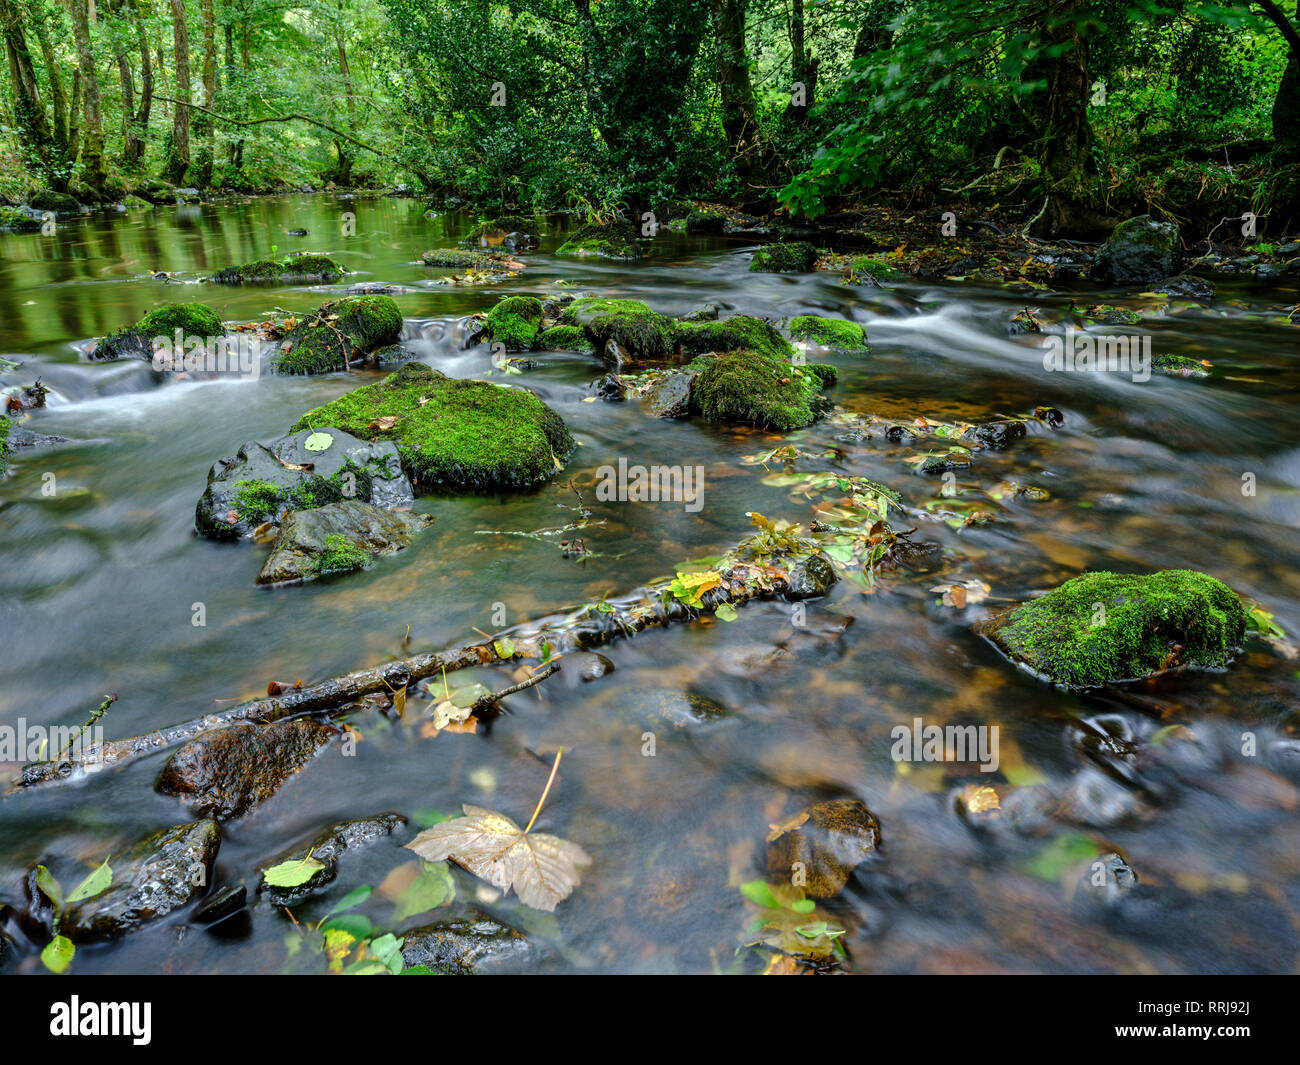 Mossy and wet rocks along with autumn colours surrounding the River Bovey, Dartmoor National Park, Bovey Tracey, Devon, England, United Kingdom - Stock Image